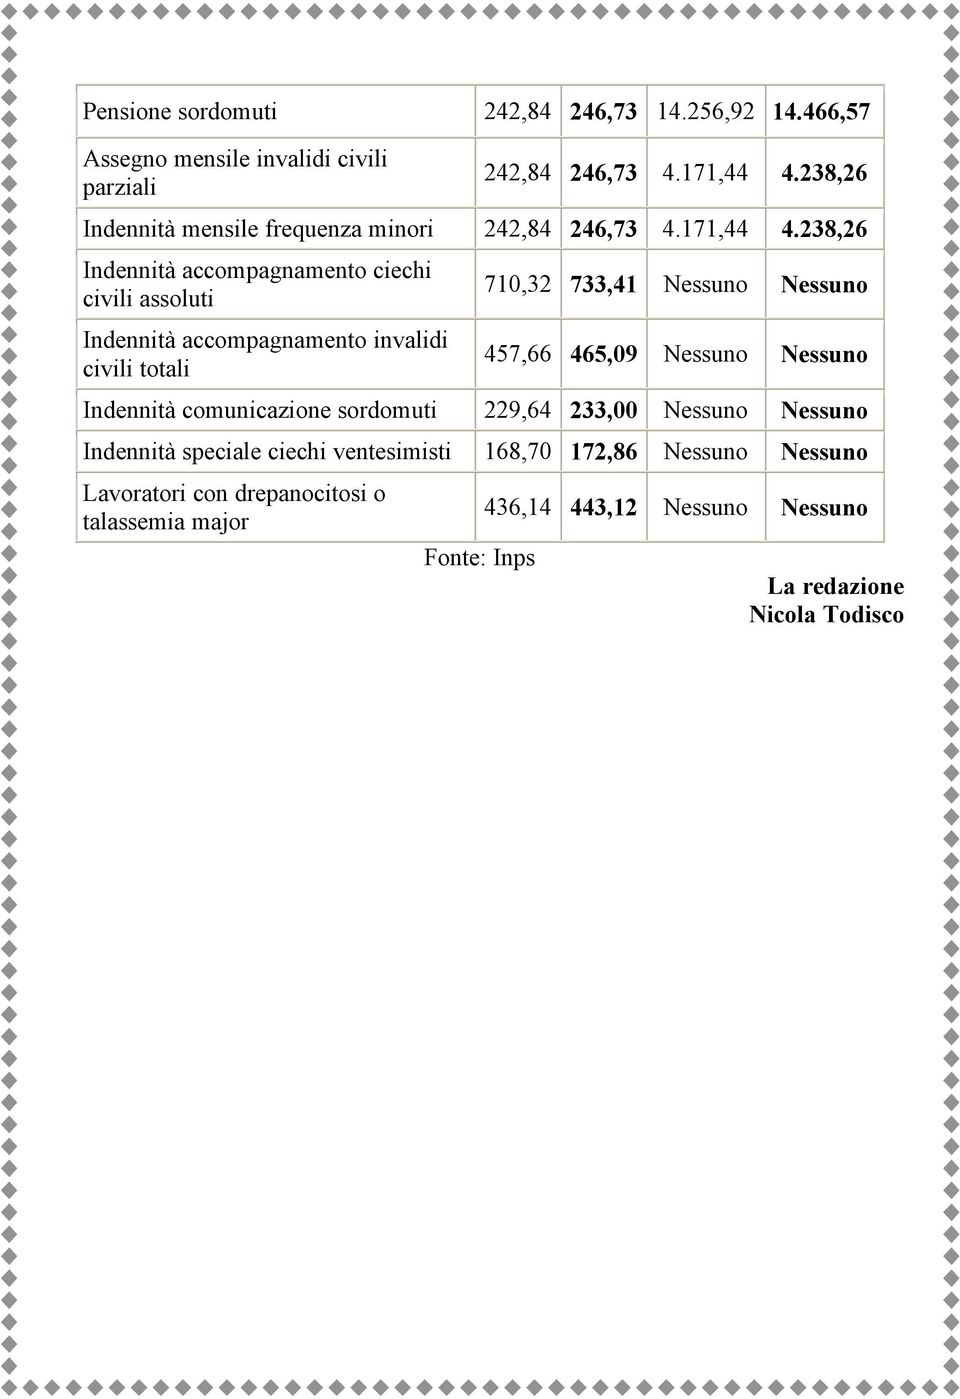 238,26 Indennità accompagnamento ciechi civili assoluti Indennità accompagnamento invalidi civili totali 710,32 733,41 Nessuno Nessuno 457,66 465,09